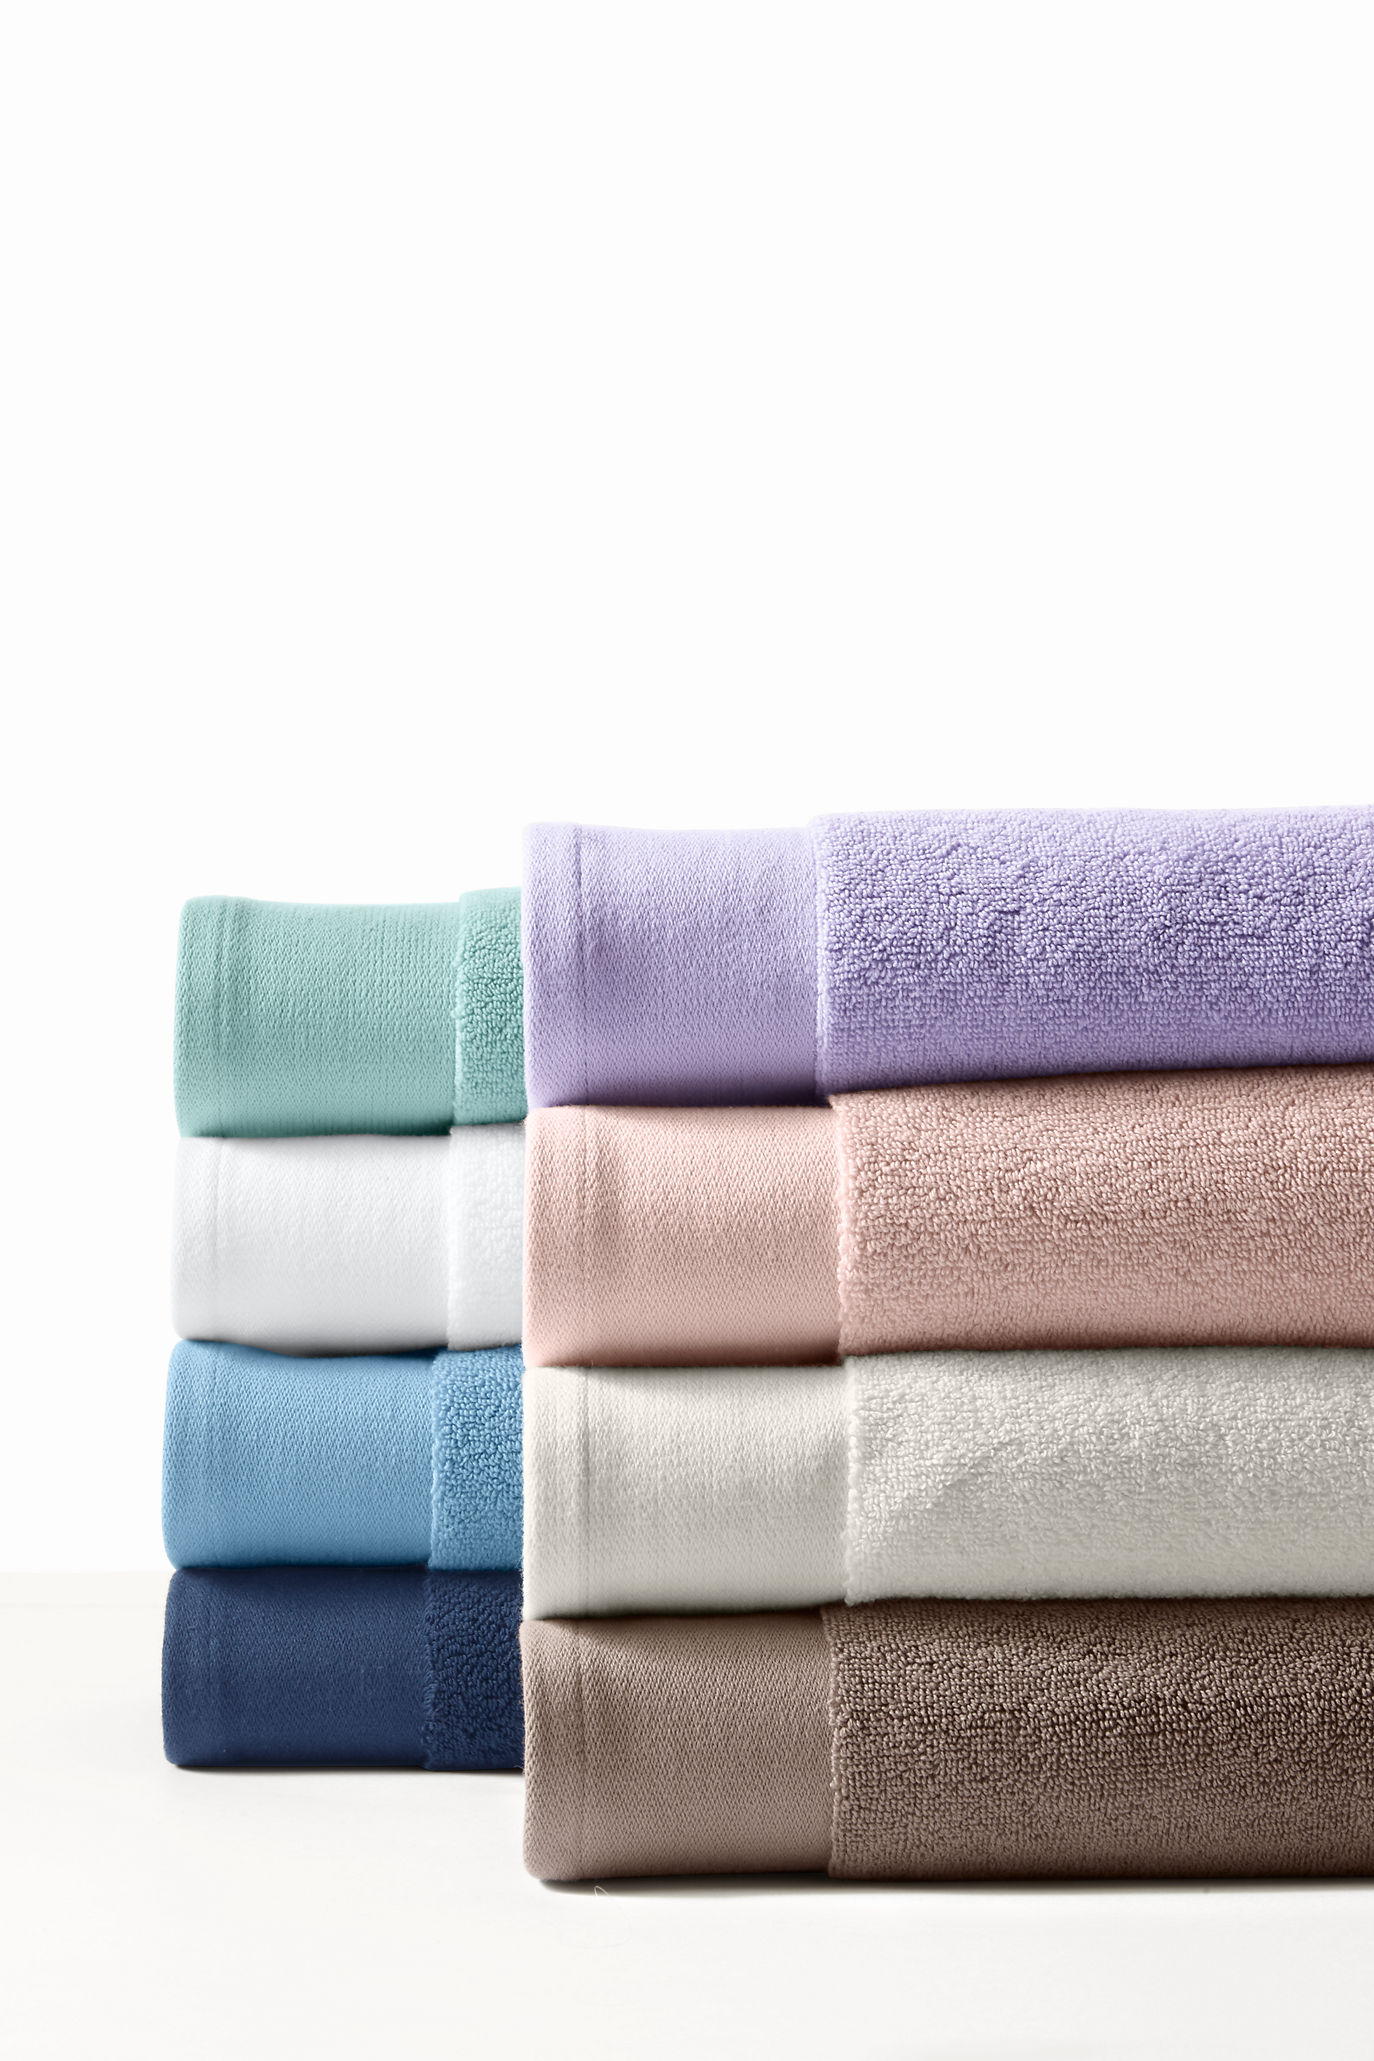 Thumbnail for 4 ways to make sure you pick the fluffiest towels ever